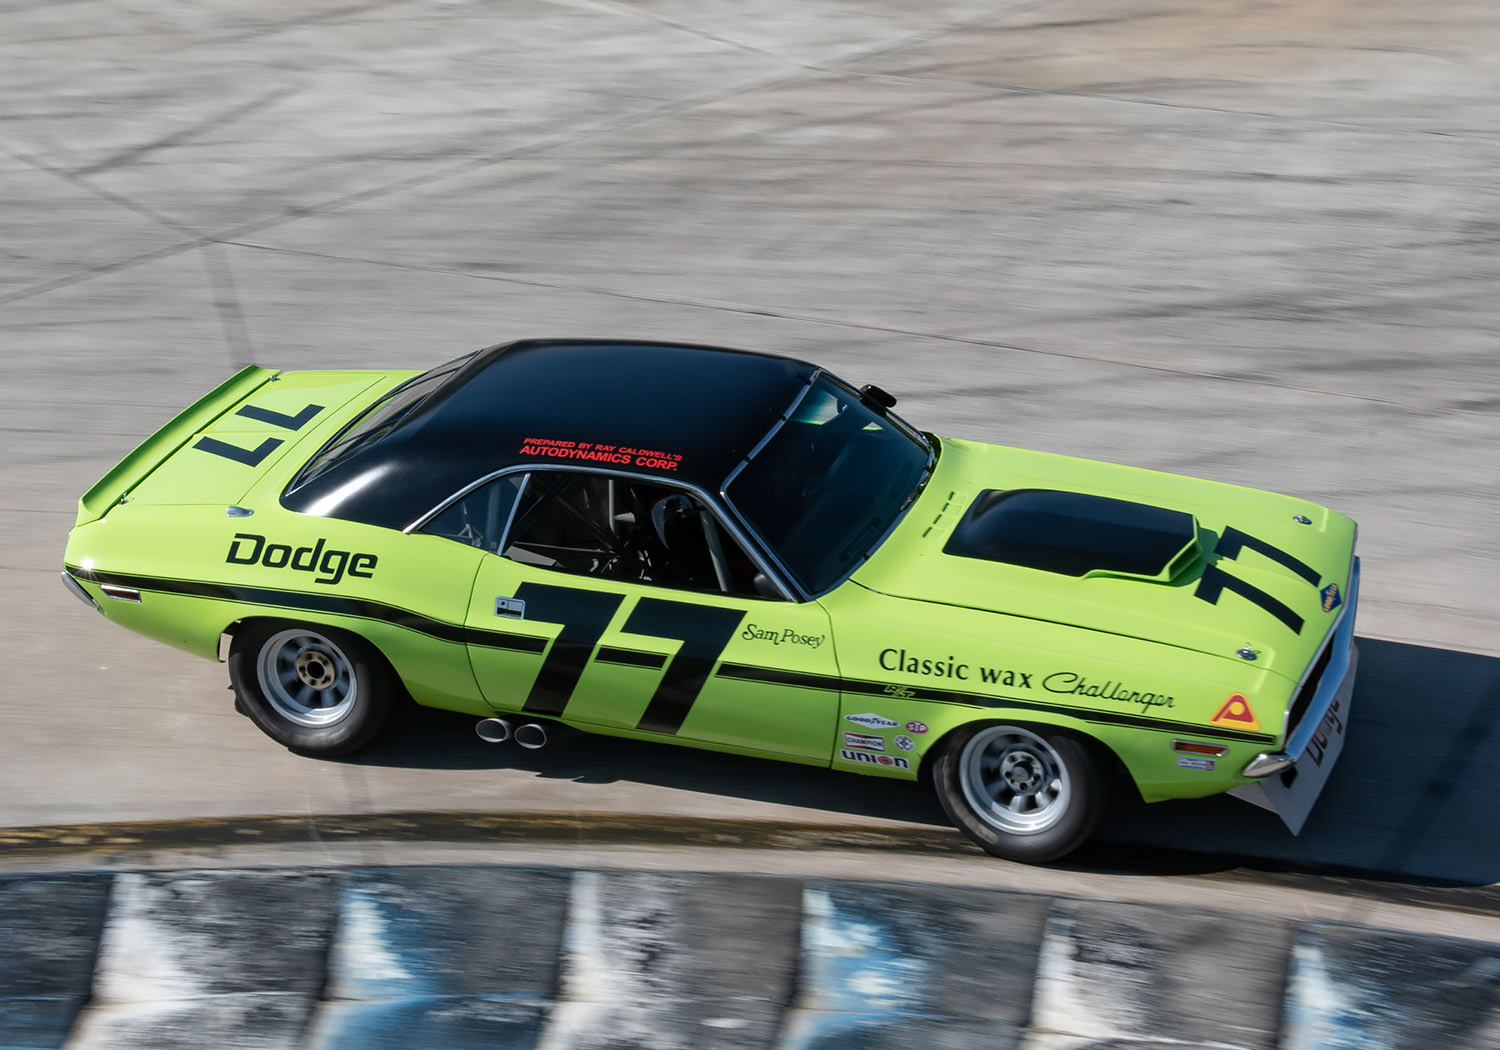 77 Richard Goldsmith 70 Dodge Challenger Chuck Andersen